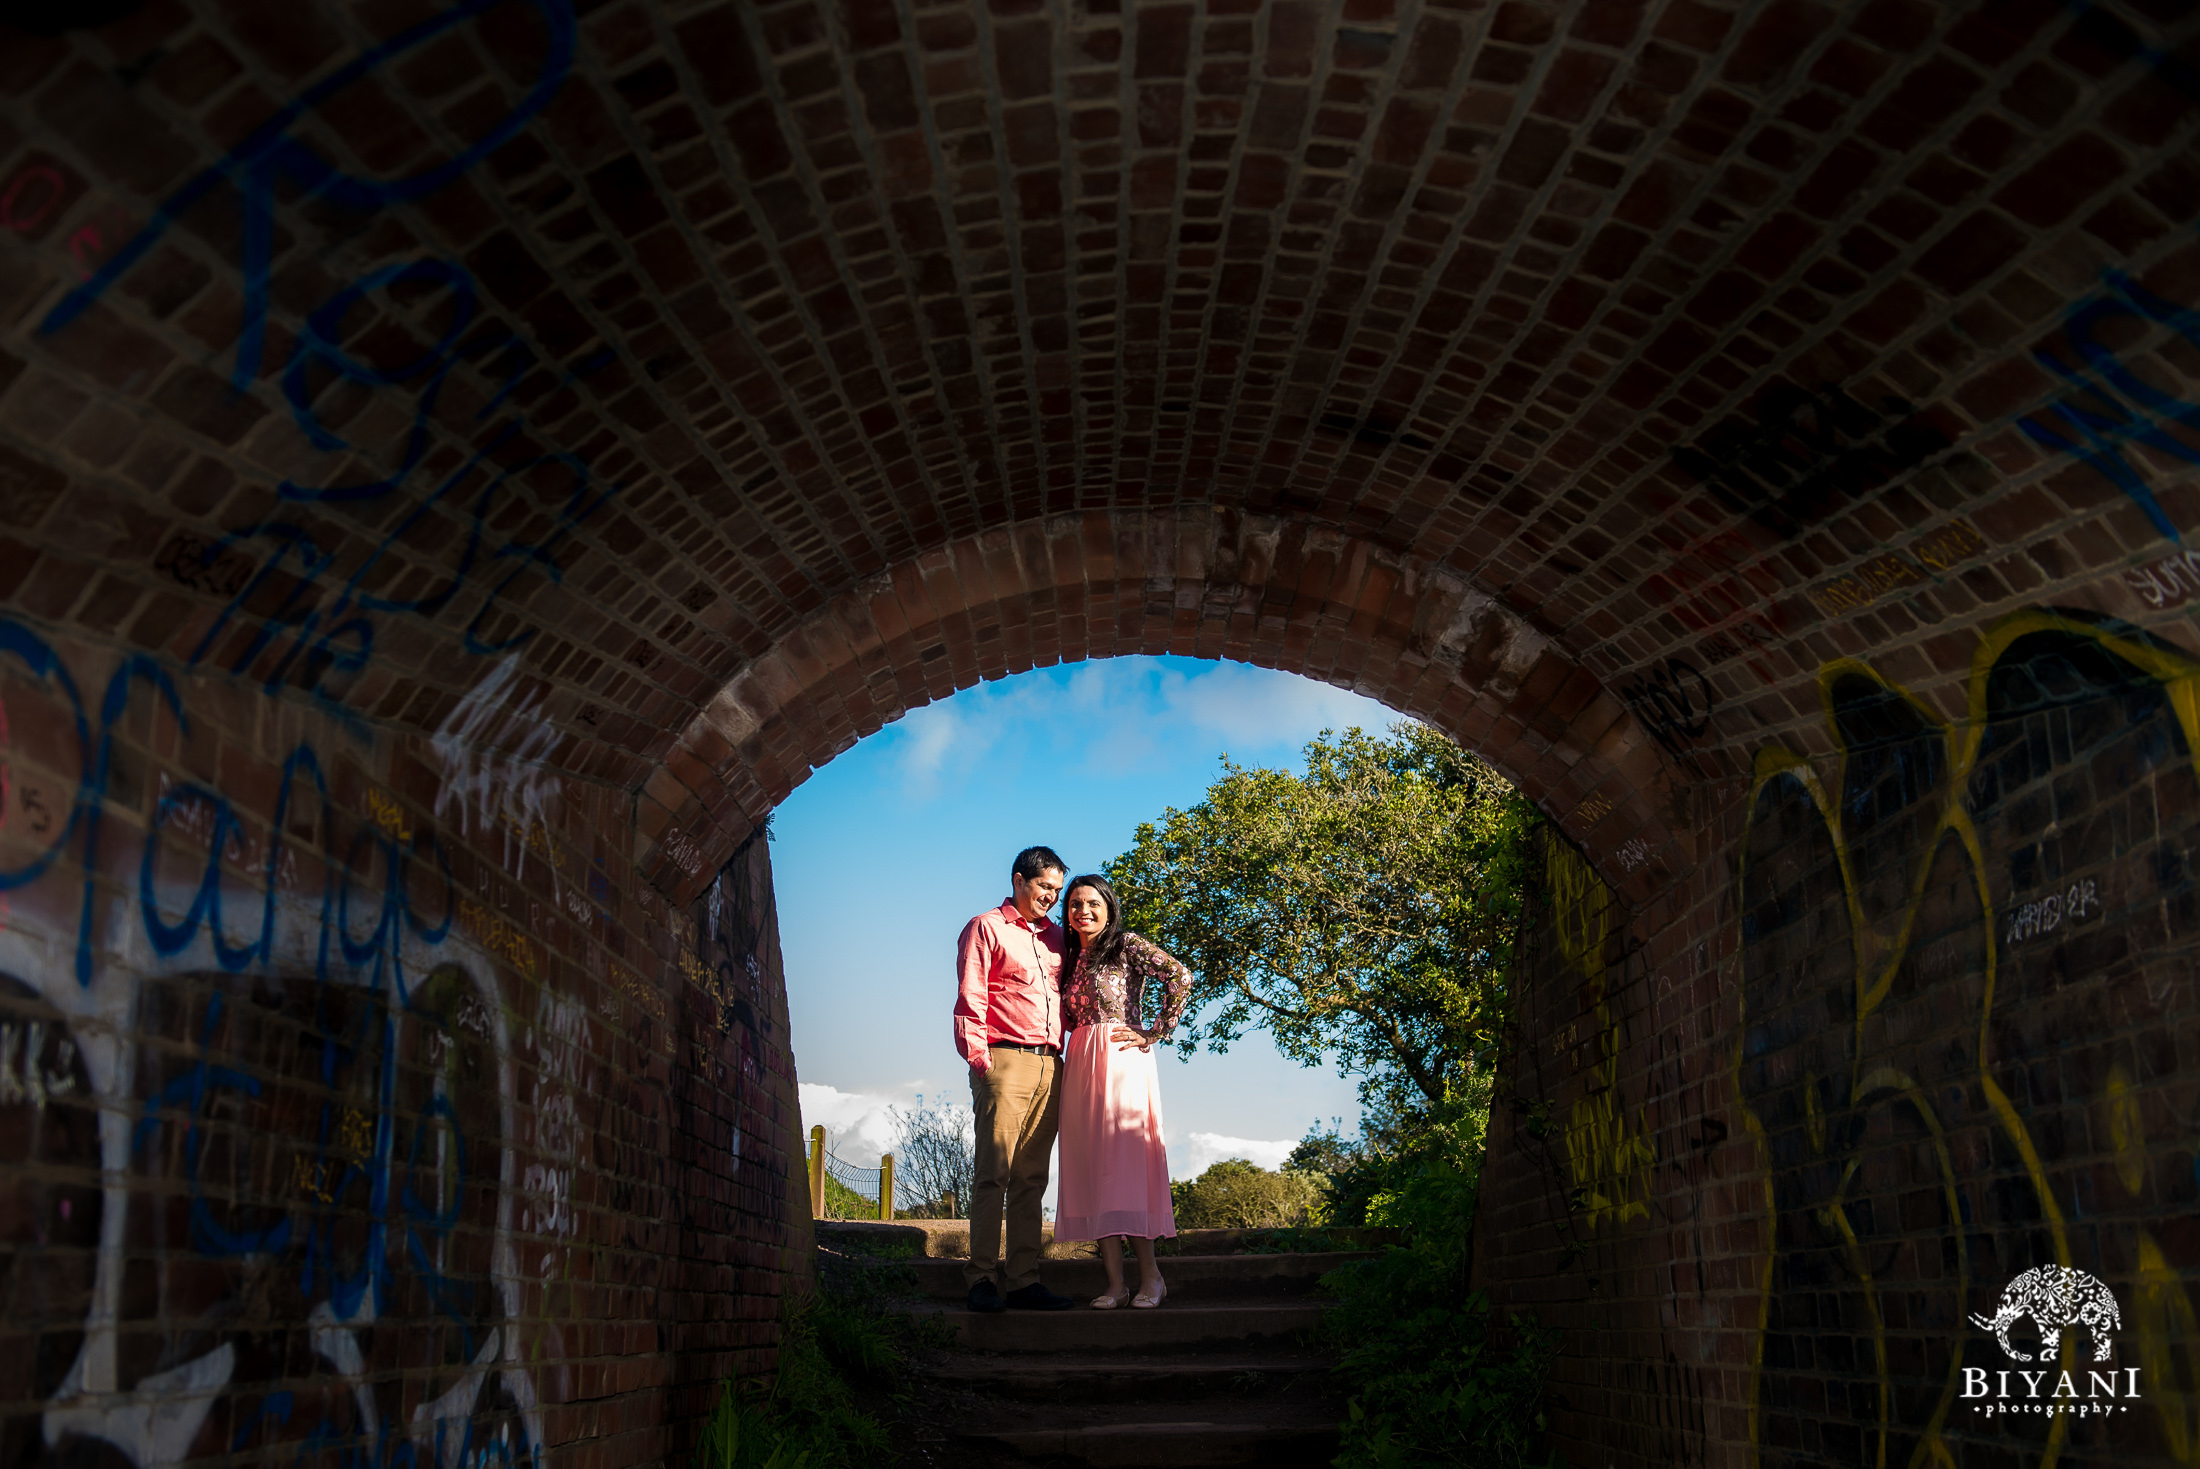 couple posing in a tunnel entrance in San Francisco for engagement photo shoot